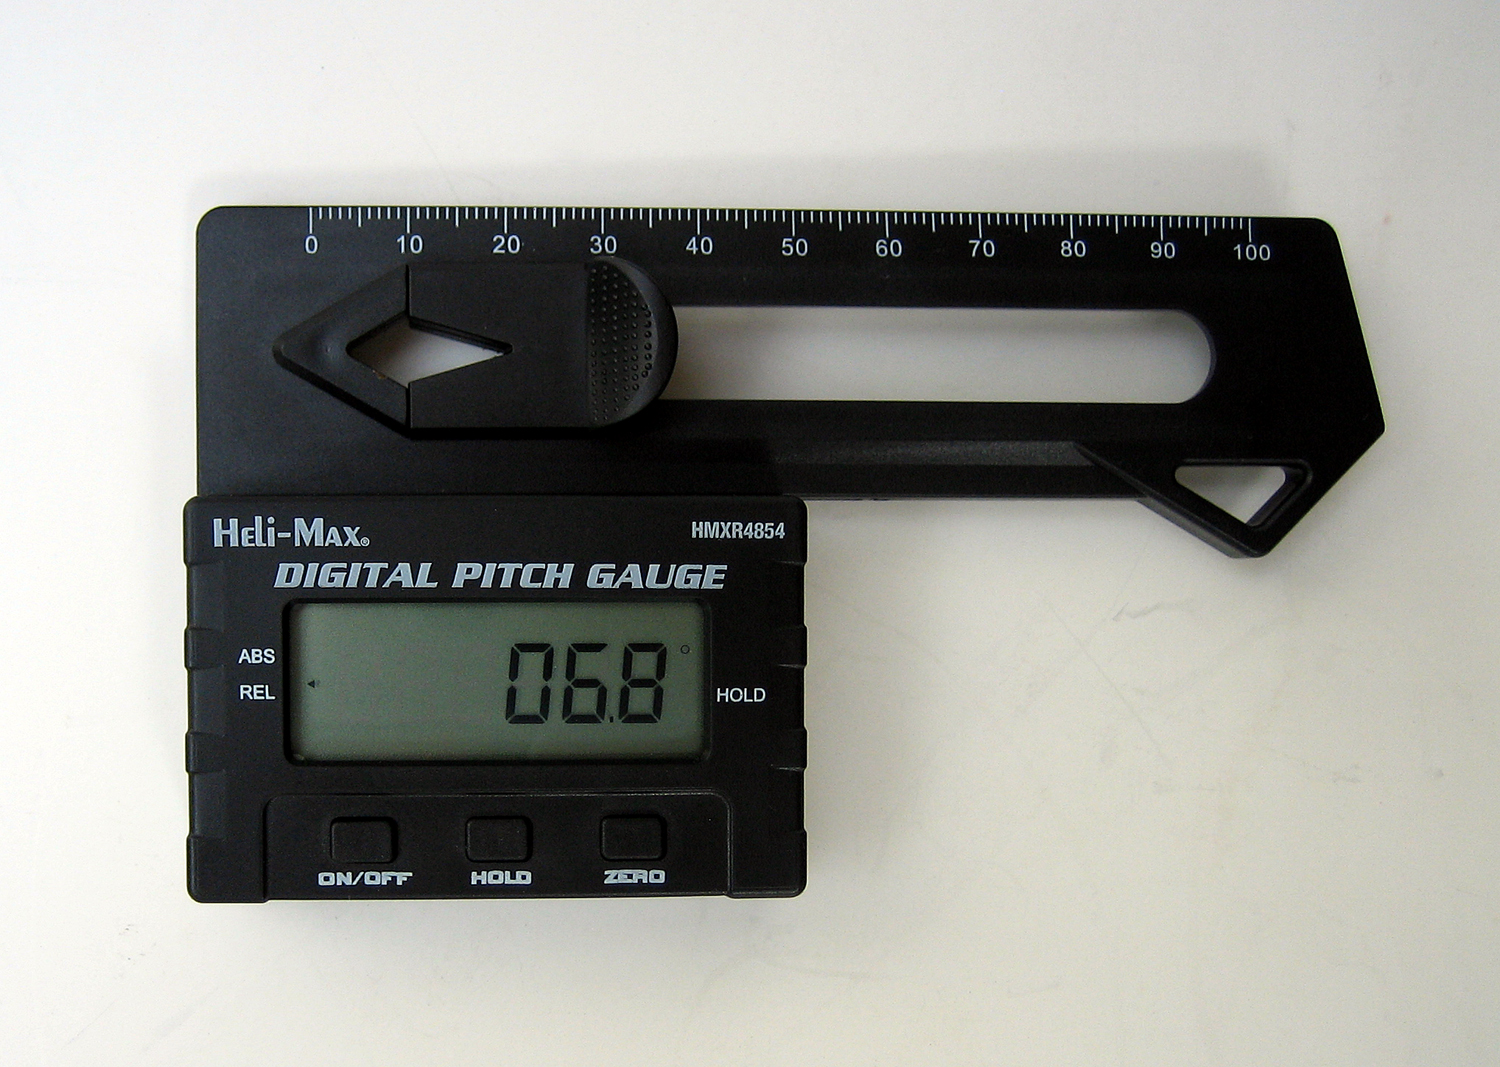 The Heli-Max Digital Pitch Gauge